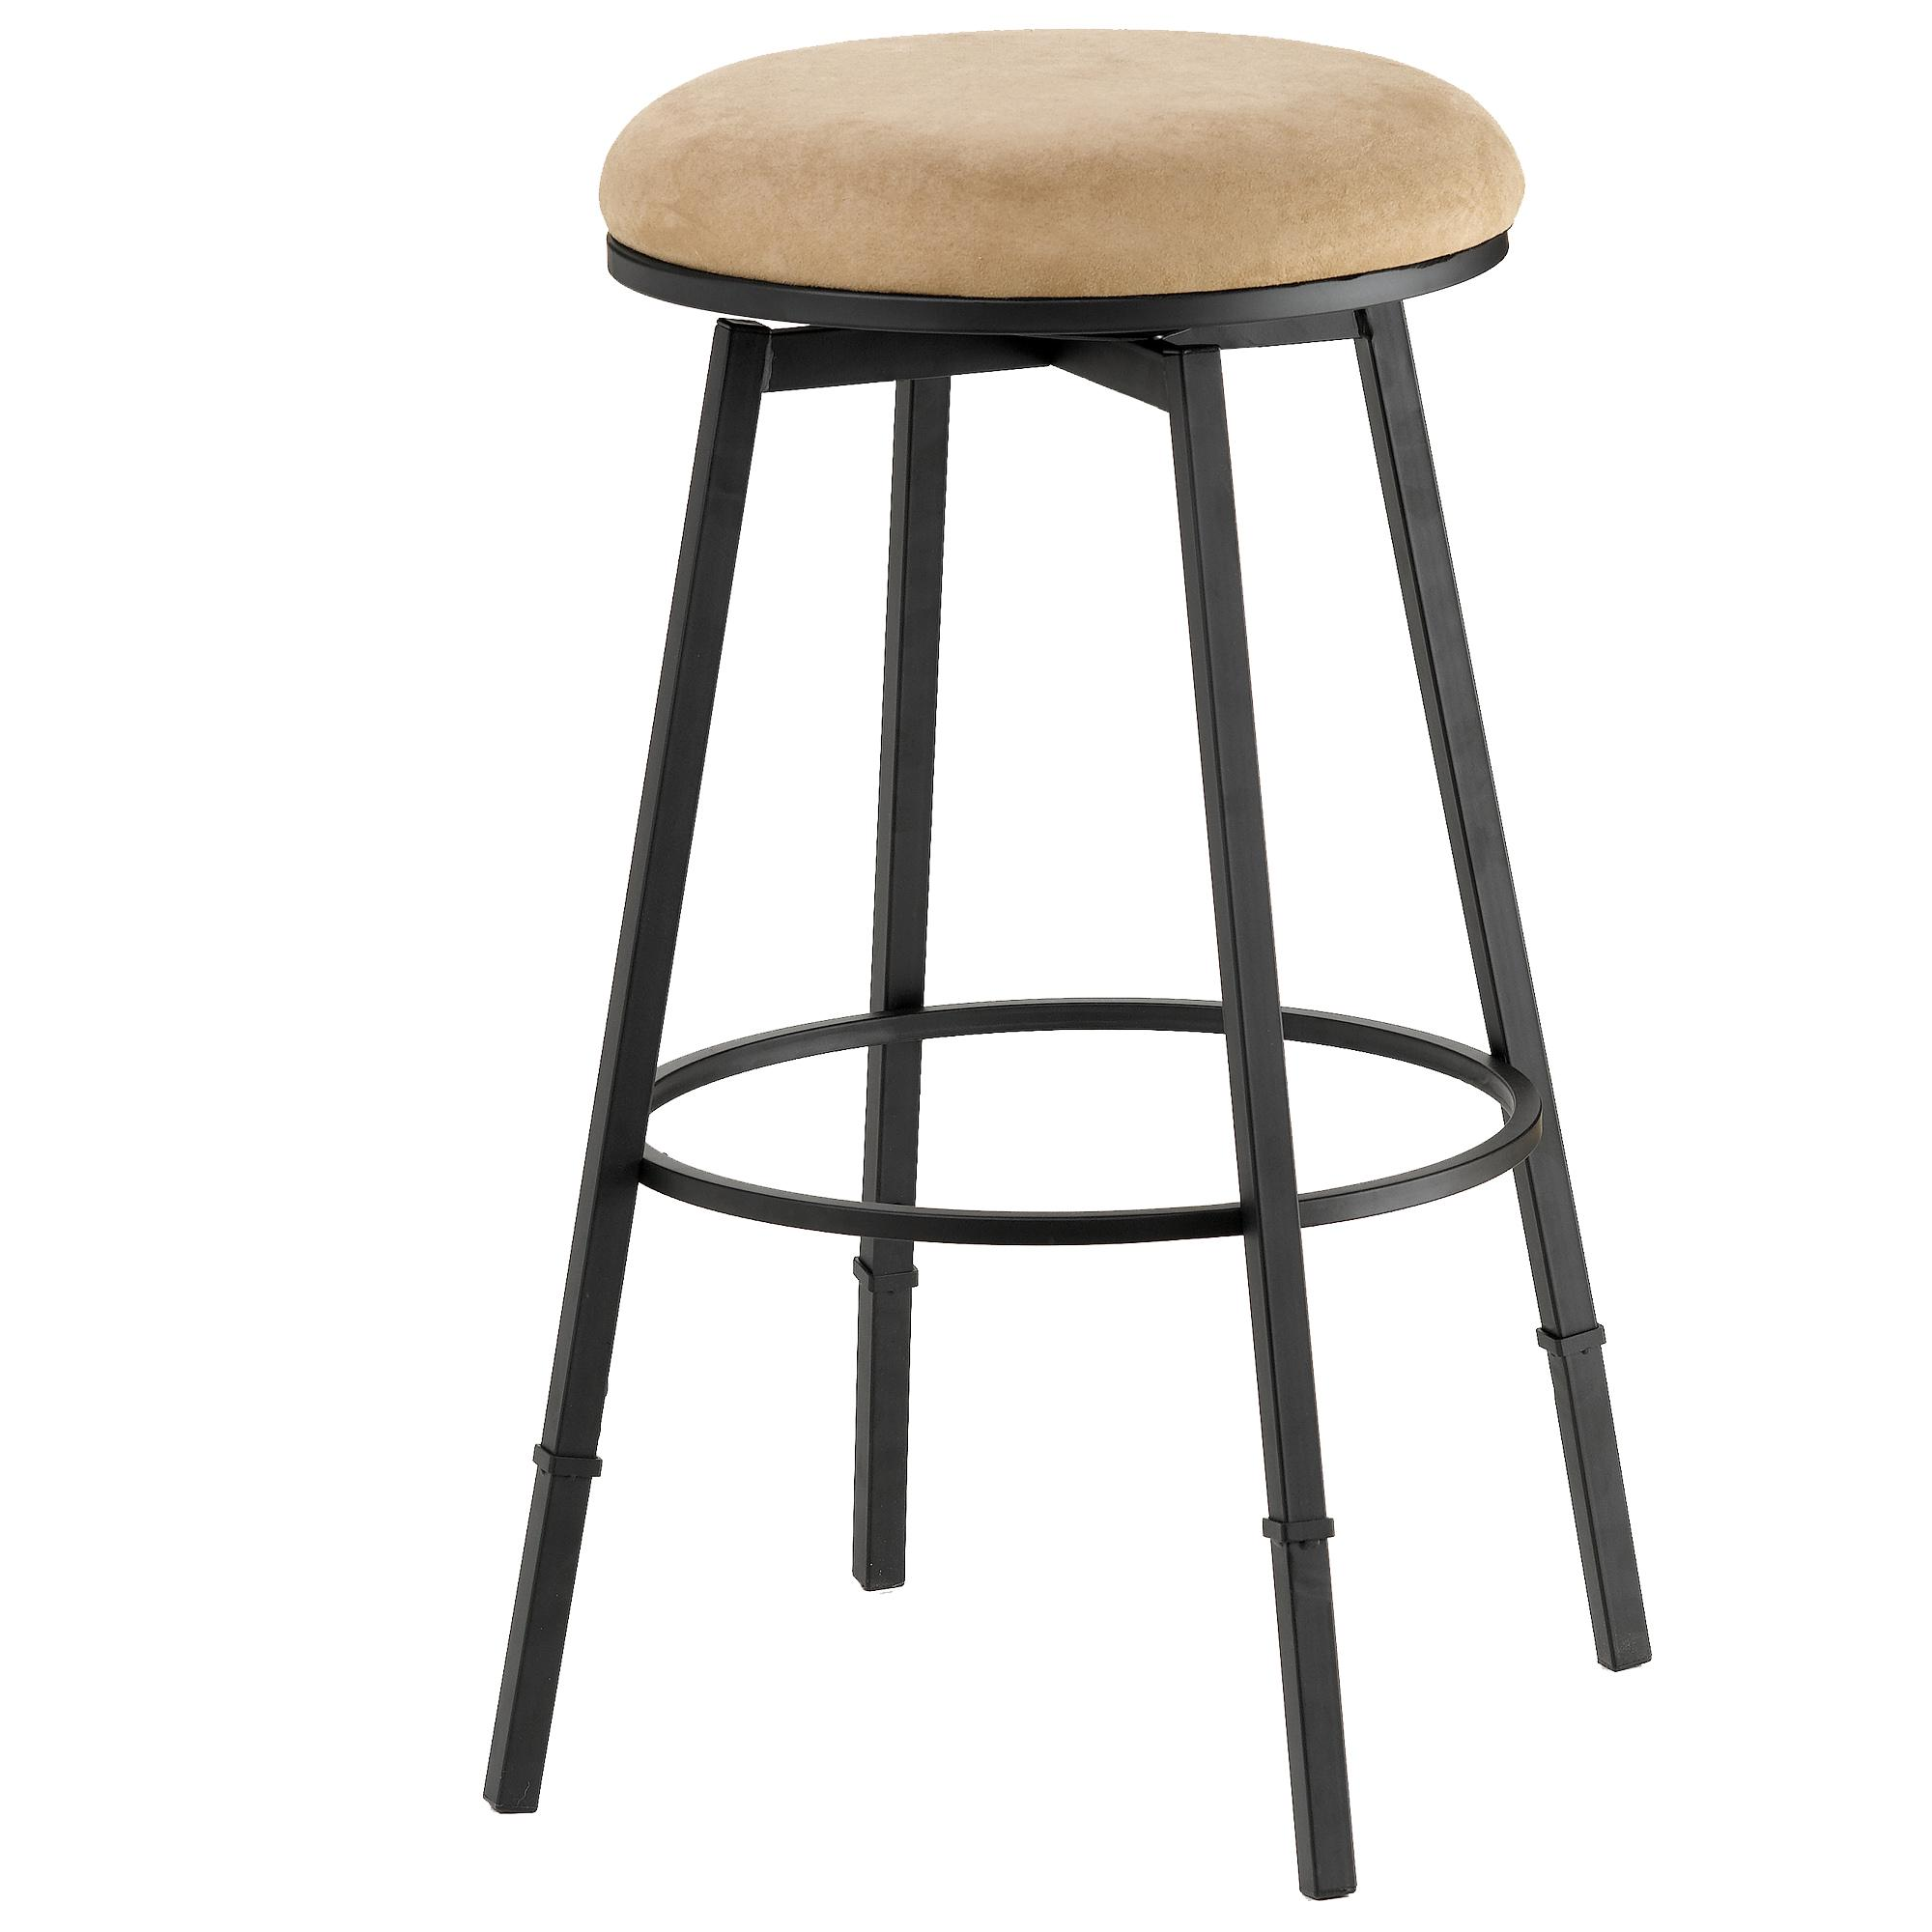 Hillsdale Backless Bar Stools Sanders Adjustable Backless